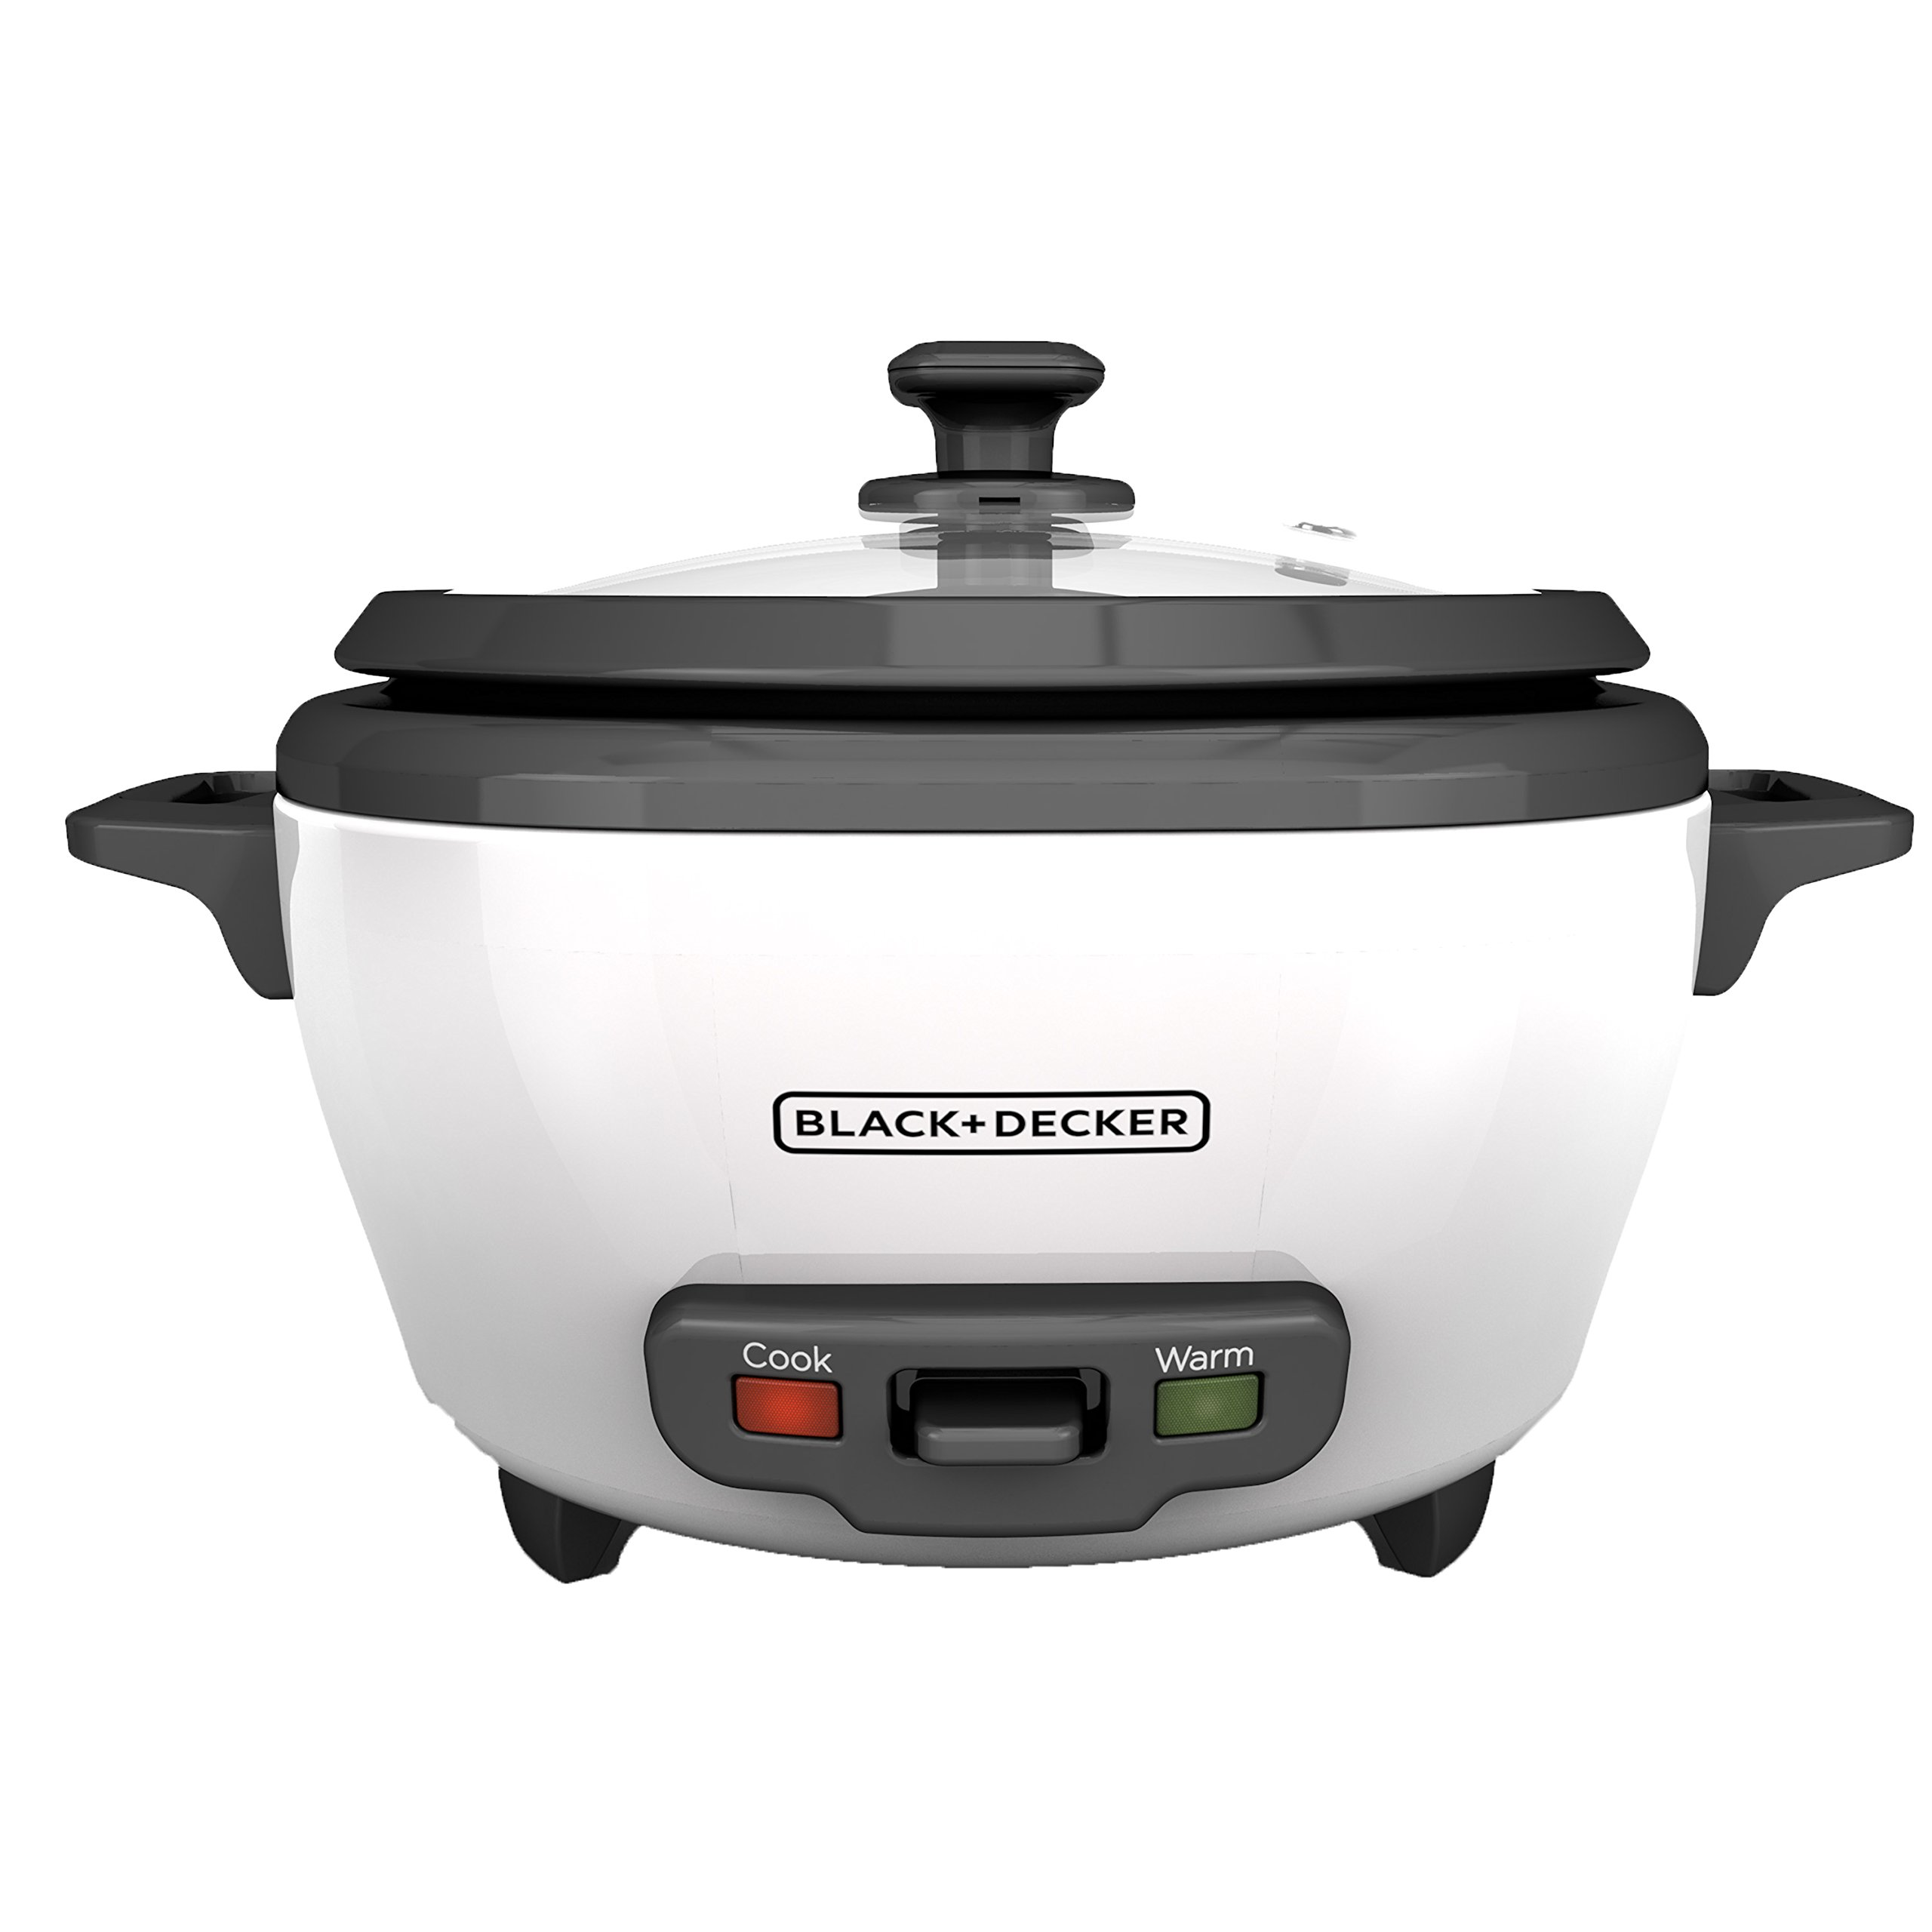 BLACK+DECKER RC506 6-Cup Cooked/3-Cup Uncooked Rice Cooker and Food Steamer, White by BLACK+DECKER (Image #1)